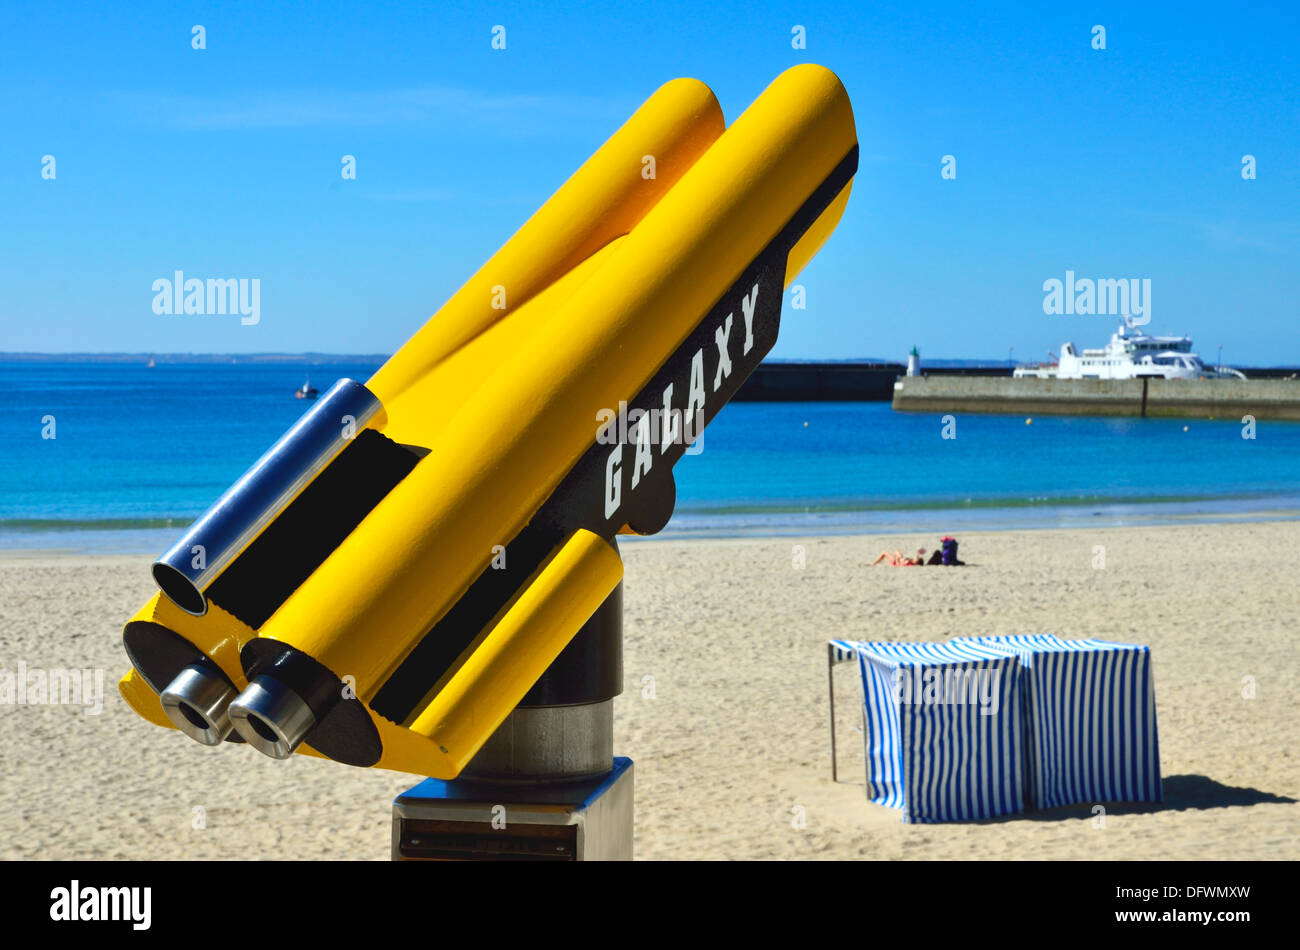 http://c8.alamy.com/comp/DFWMXW/space-age-seaside-binoculars-at-quiberon-overlooking-the-beach-and-DFWMXW.jpg